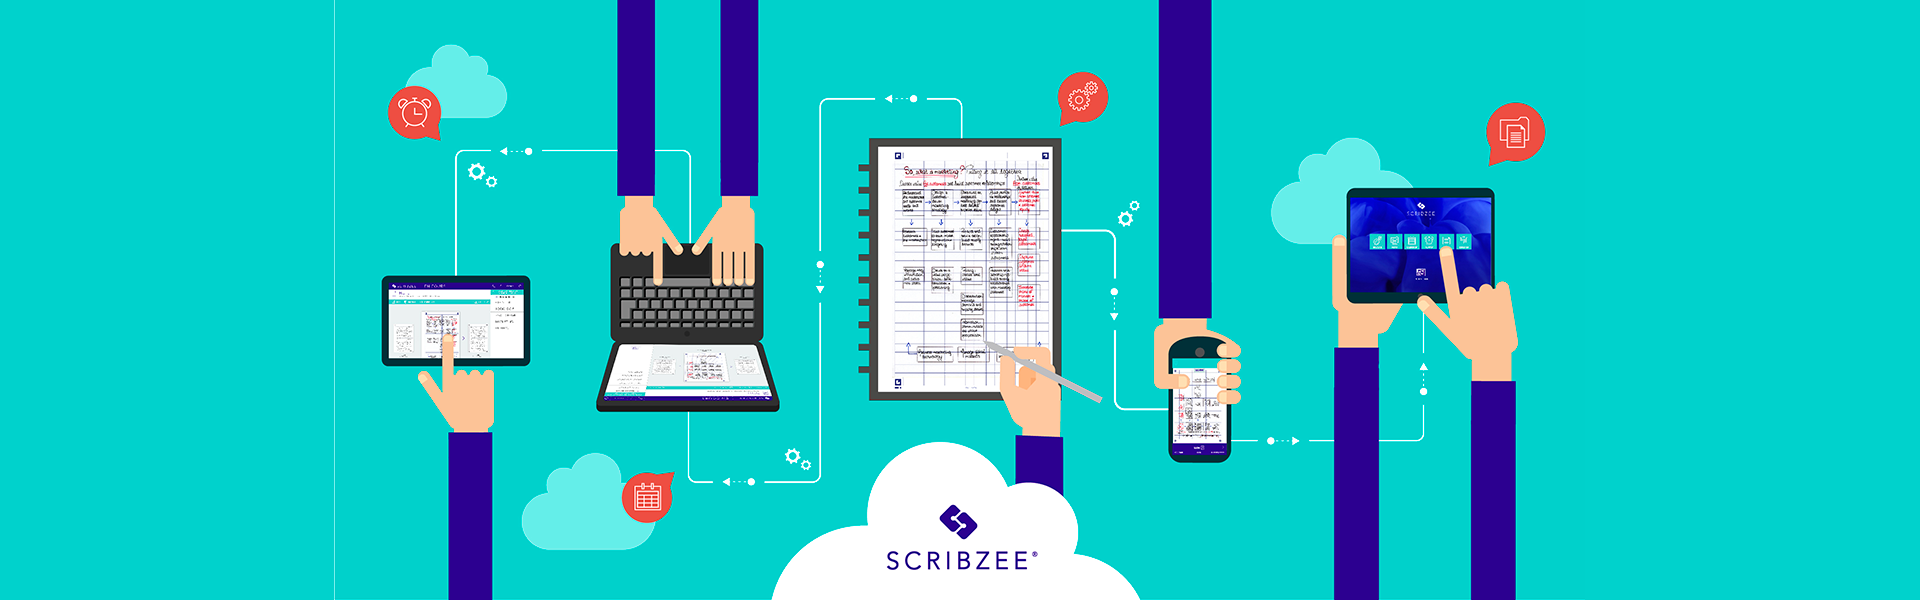 Application SCRIBZEE, gestion des notes manuscrites